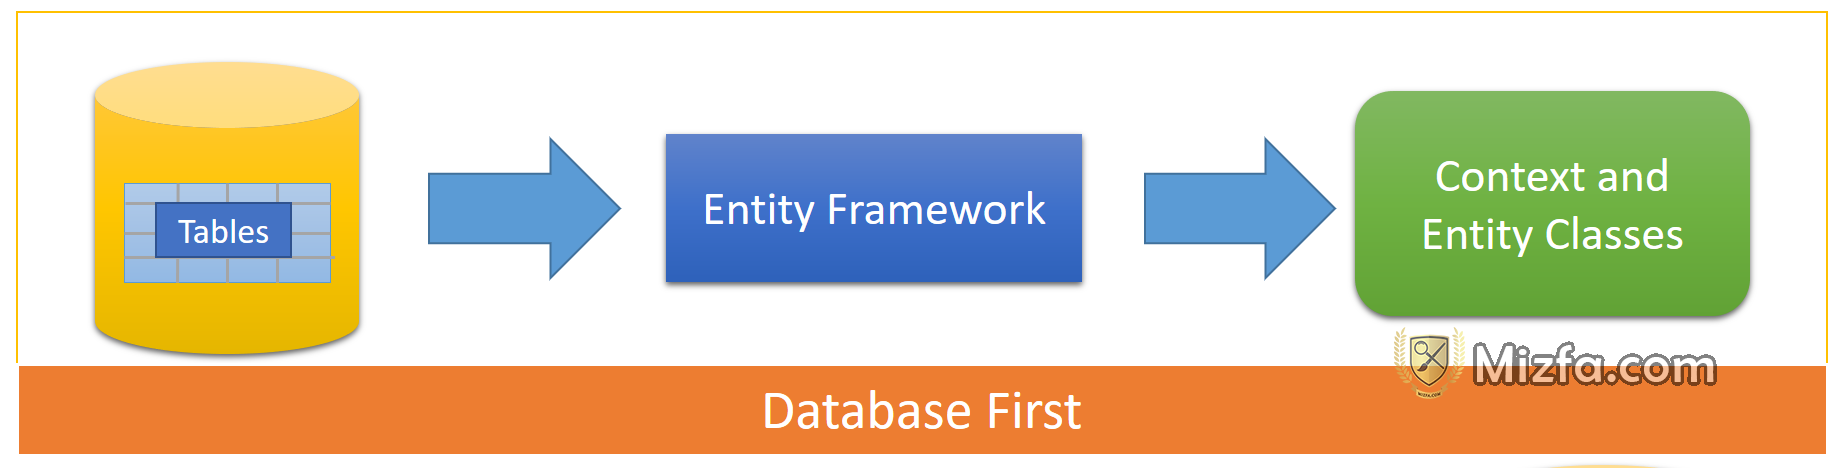 Database-First چیست ؟